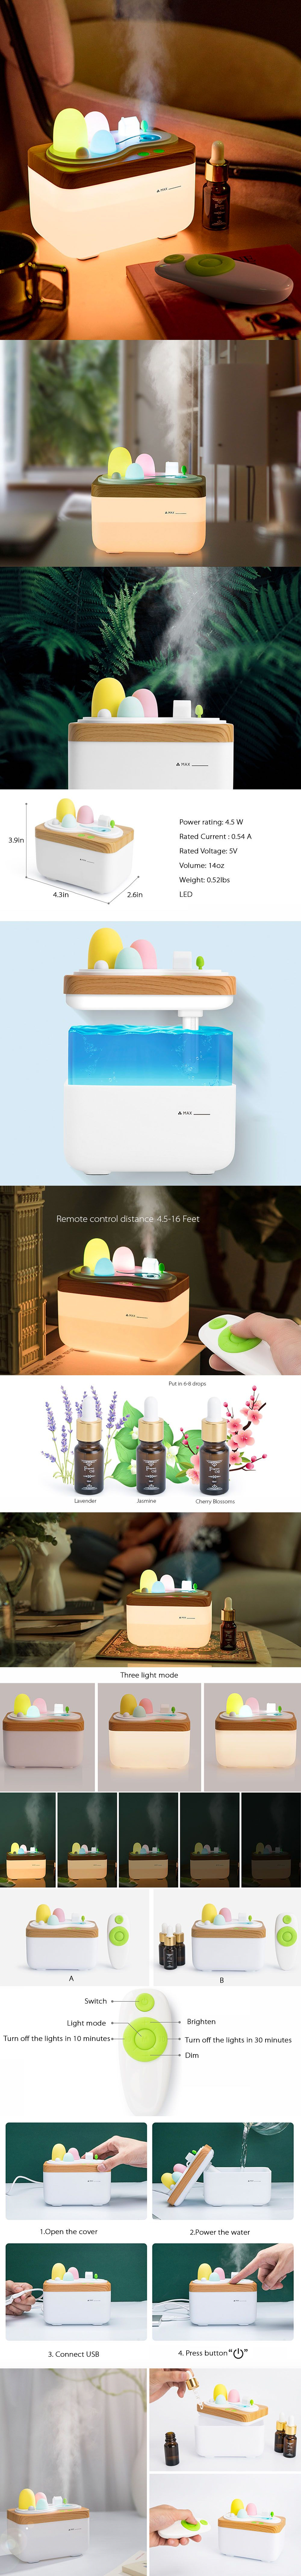 Night Light Multi-function Gadget